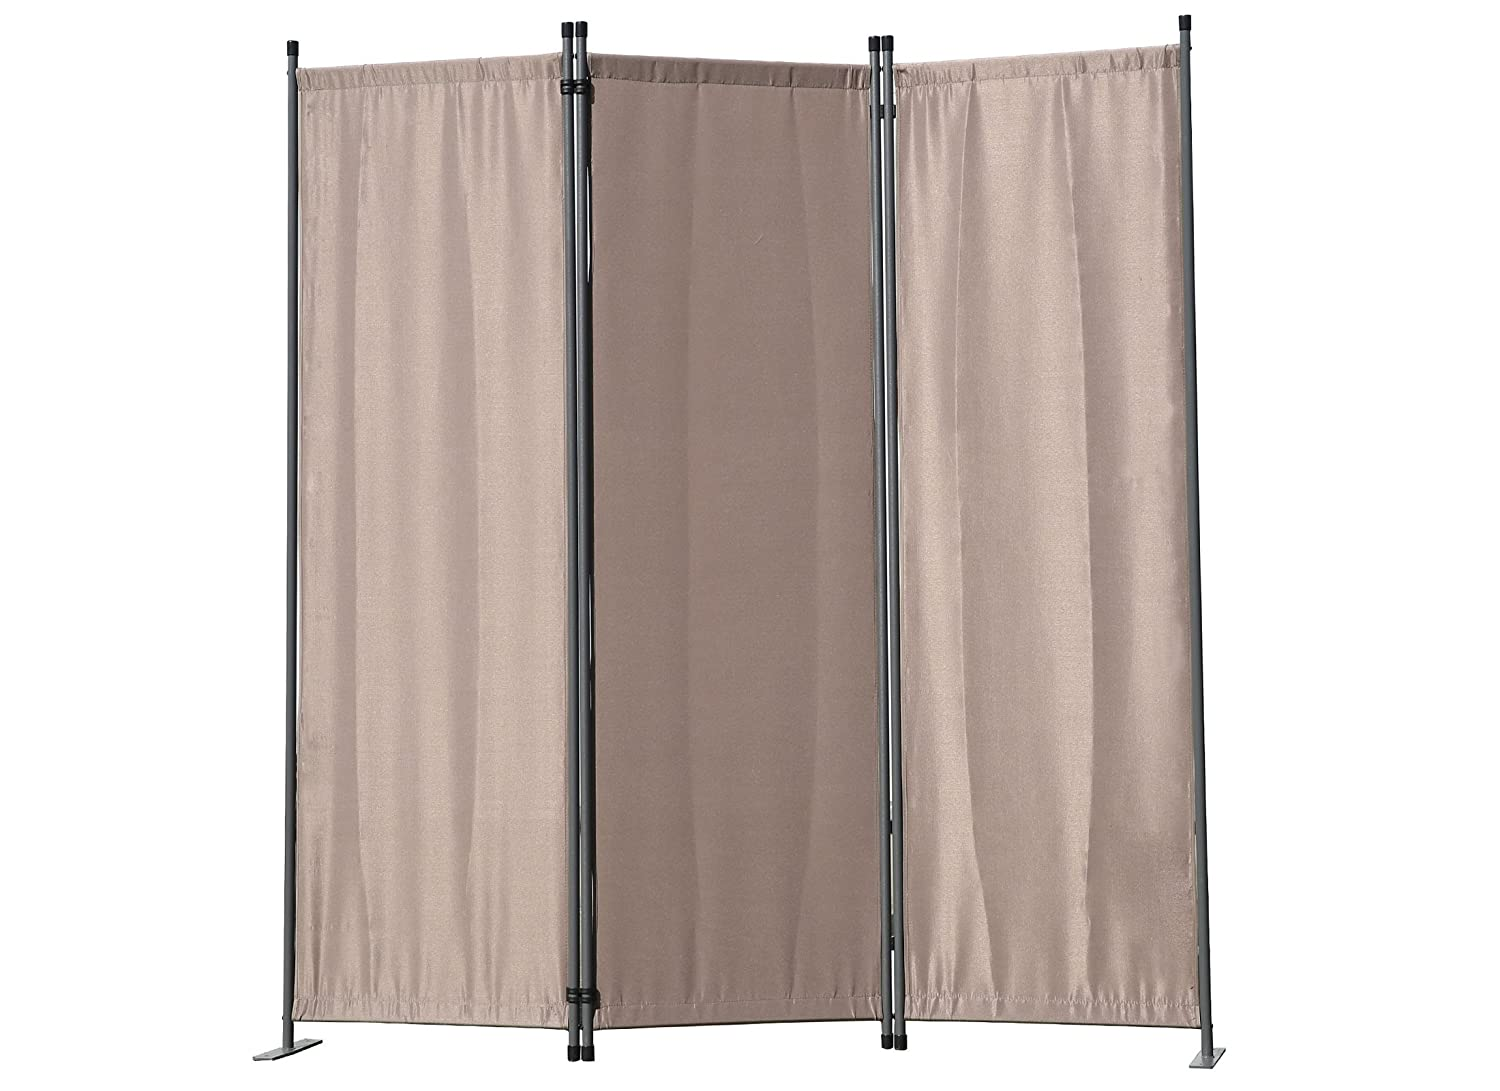 Angel Living Protective Screens Room Divider Screen Panel Folding Room Partition Wall Furniture Outdoor Screens for Patio Privacy (3-piece 169x165cm, Chocolate)